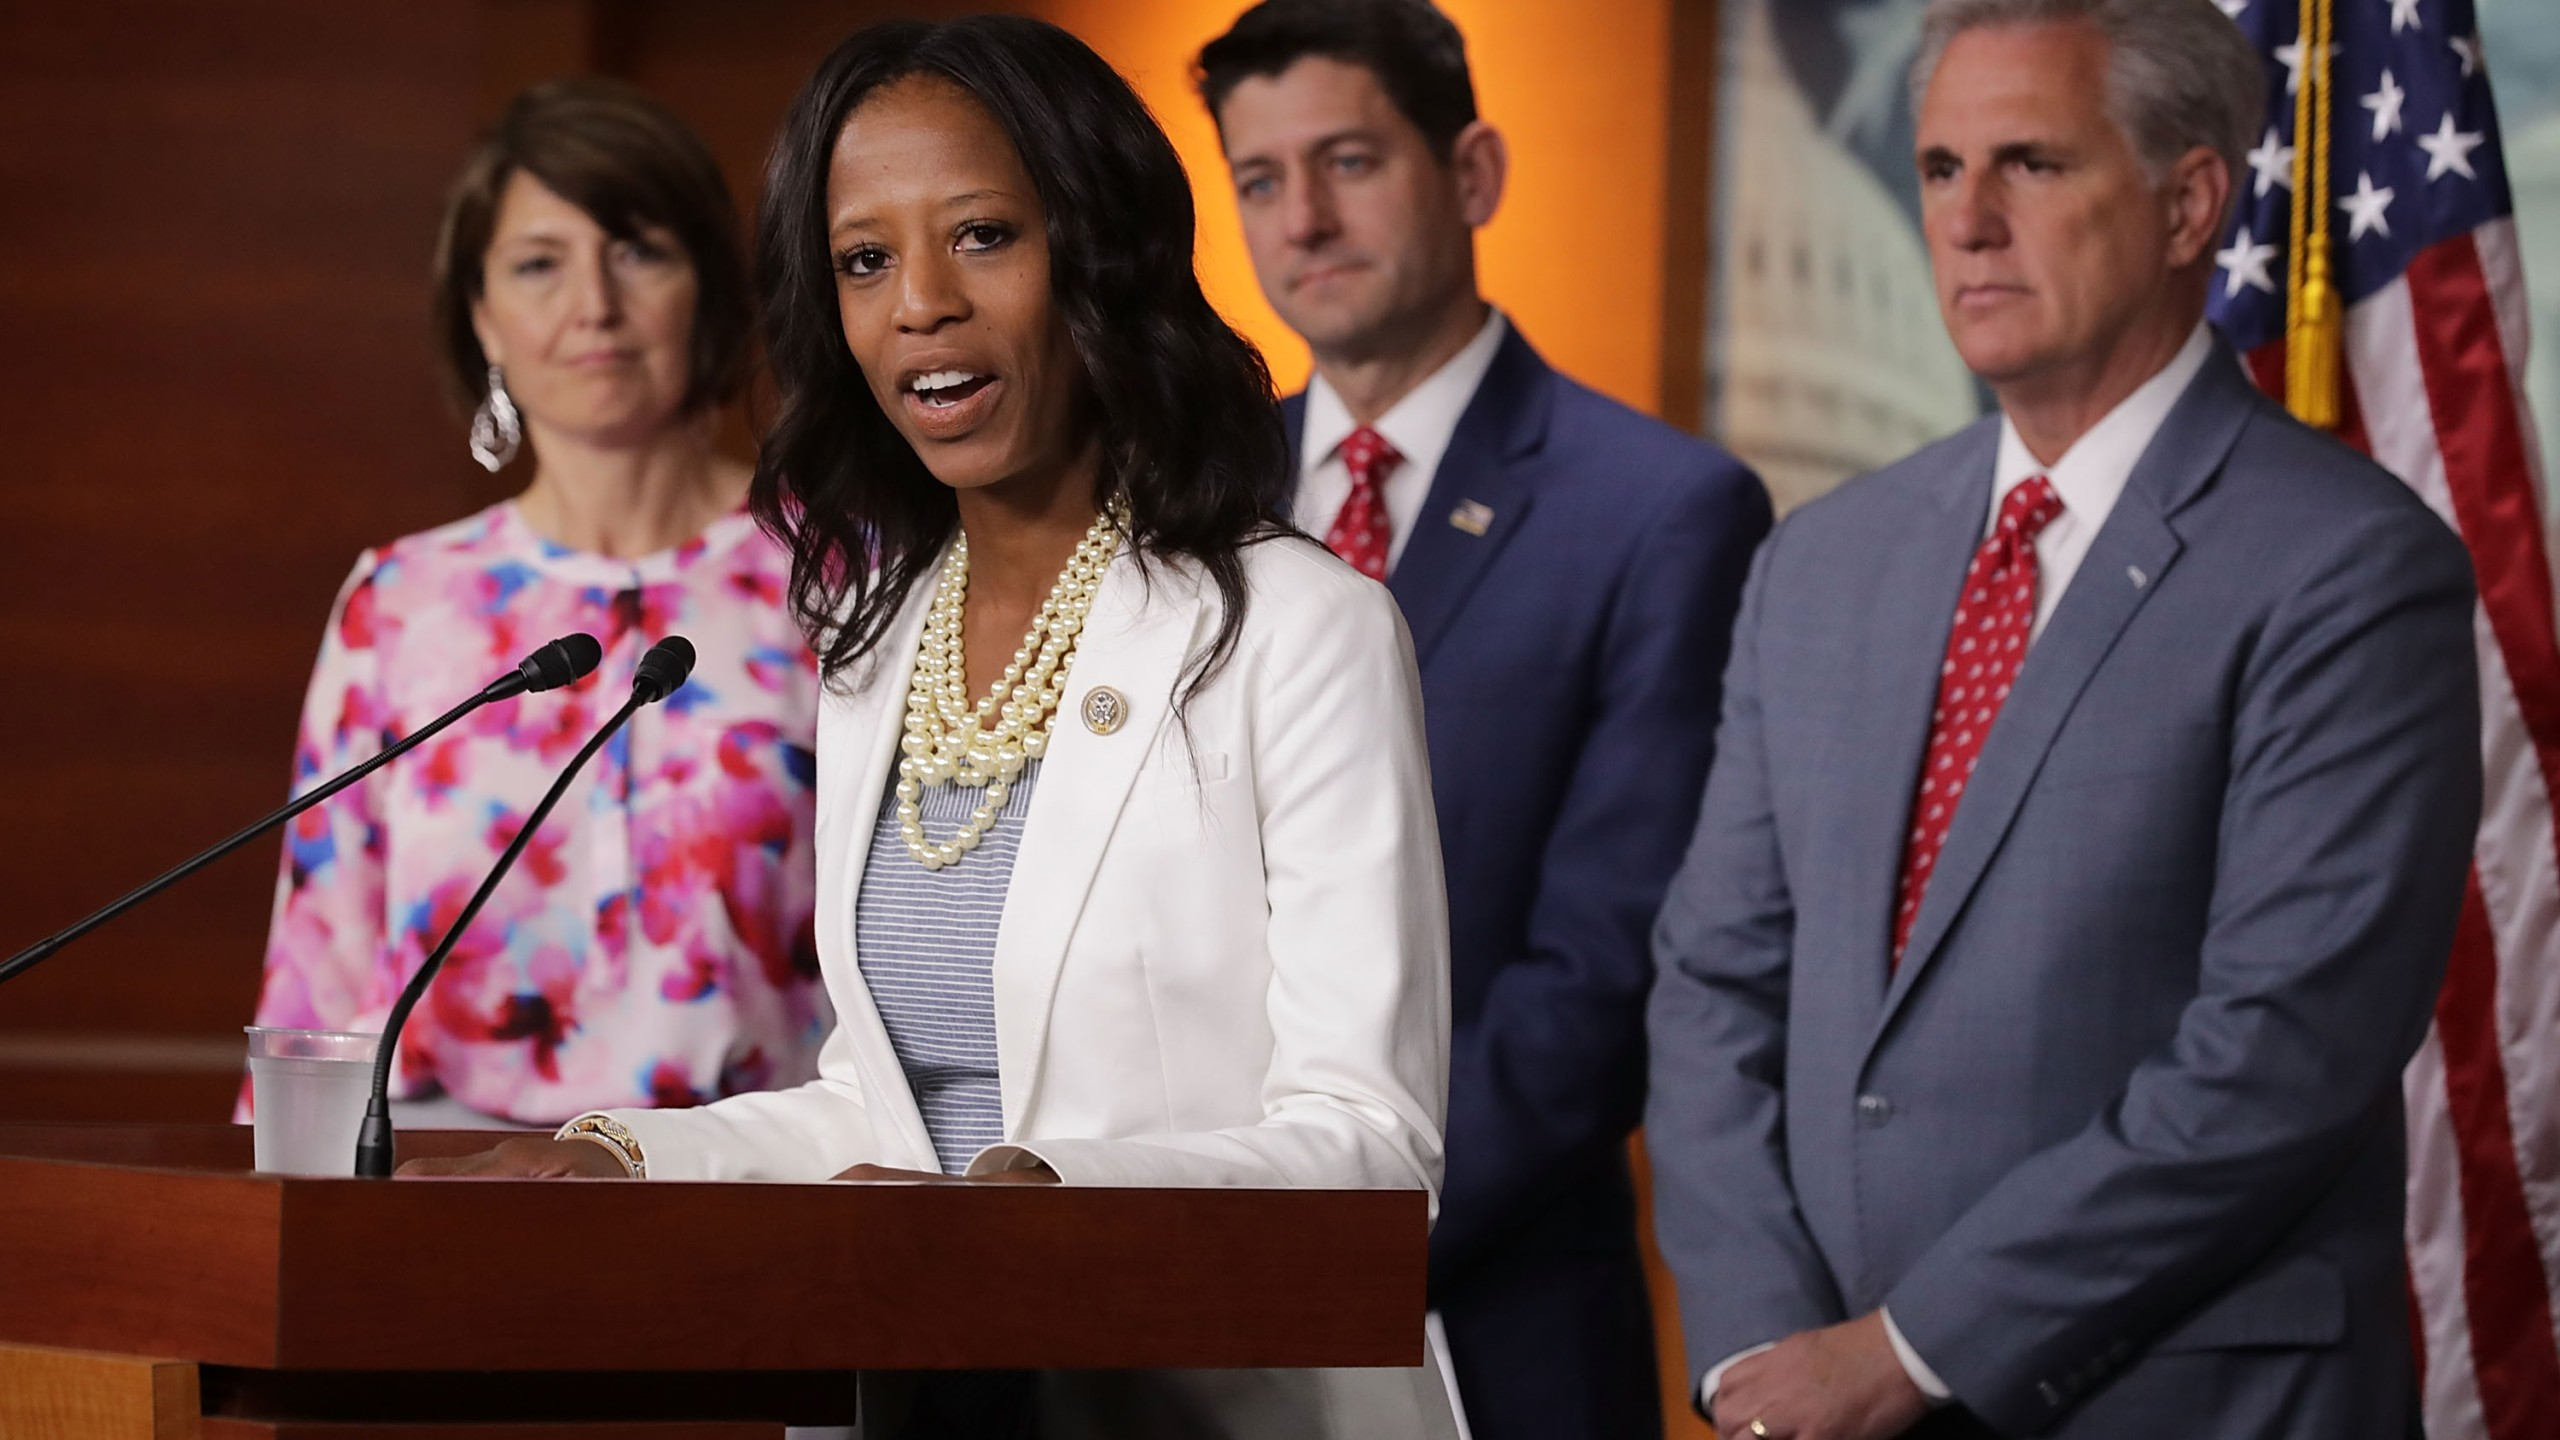 Rep. Mia Love speaks during a news conference with (from left) Rep. Cathy McMorris Rodgers, Speaker of the House Paul Ryan and Majority Leader Kevin McCarthy at the U.S. Capitol Visitors Center on July 17, 2018. (Credit: Chip Somodevilla / Getty Images)